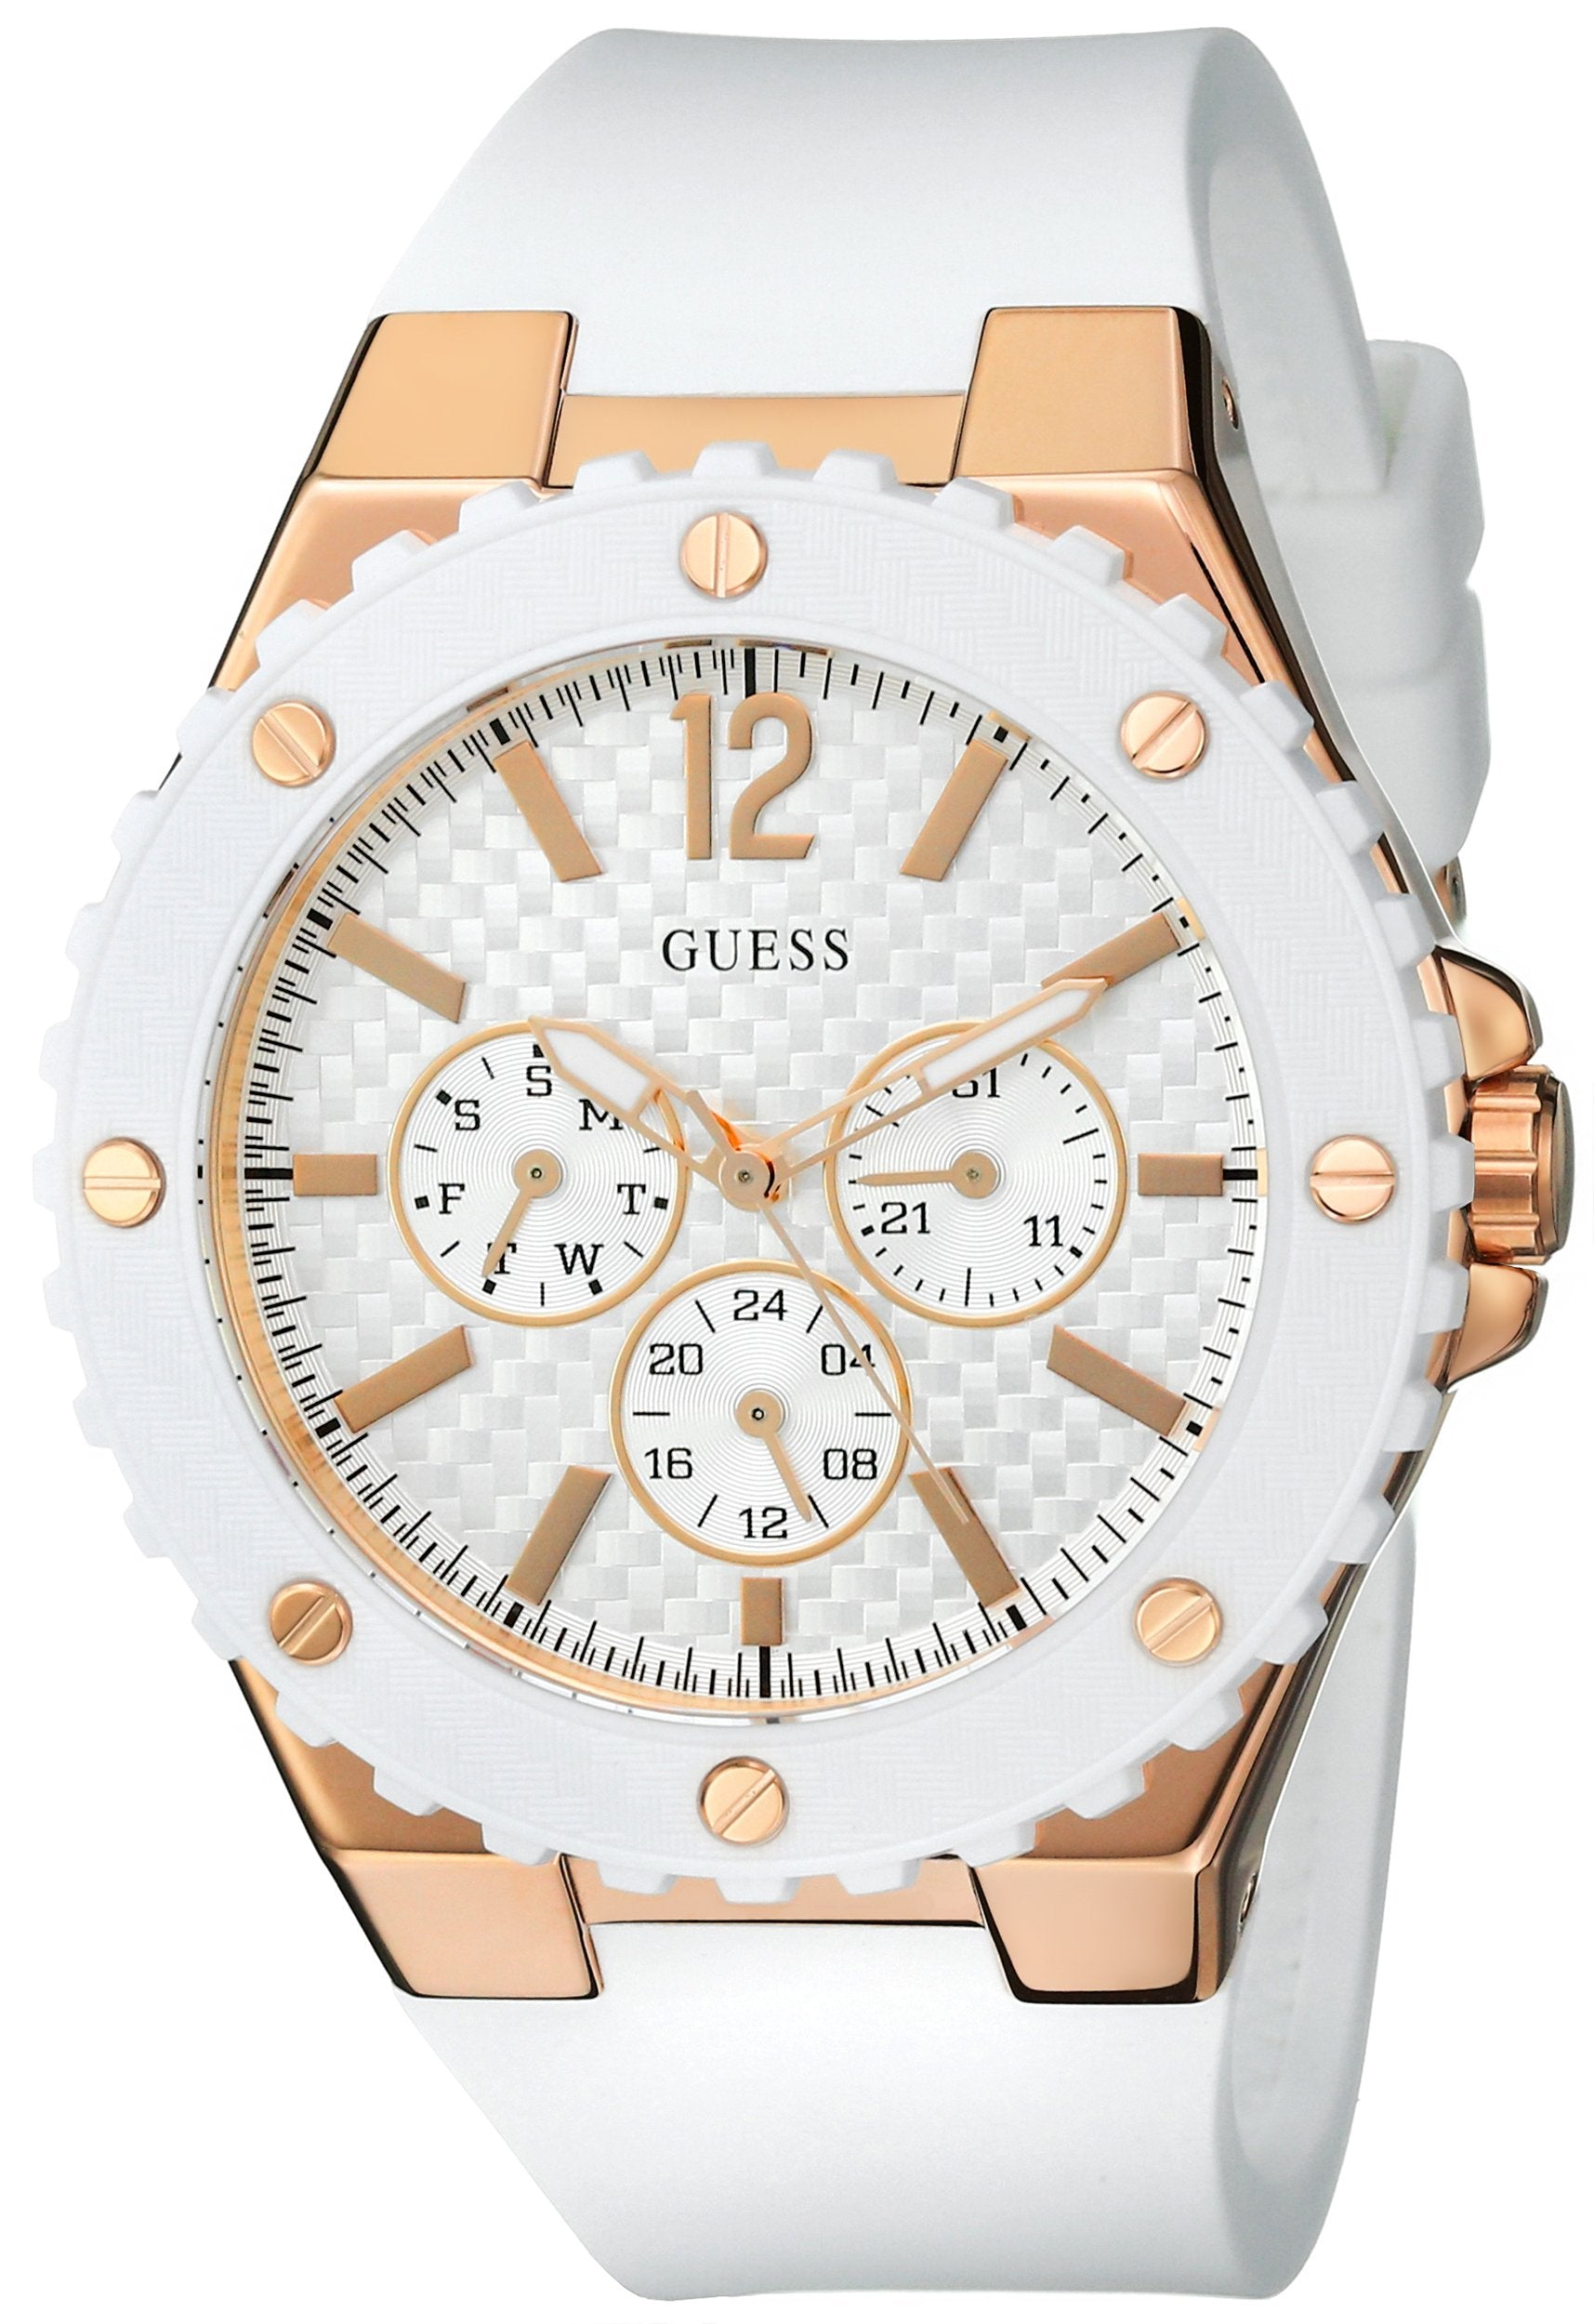 j tag guess o maxi silicone watches coachella stilettos nordstrom sunglasses gold floral watch candy maxx rose t c jacket dsc polette jean